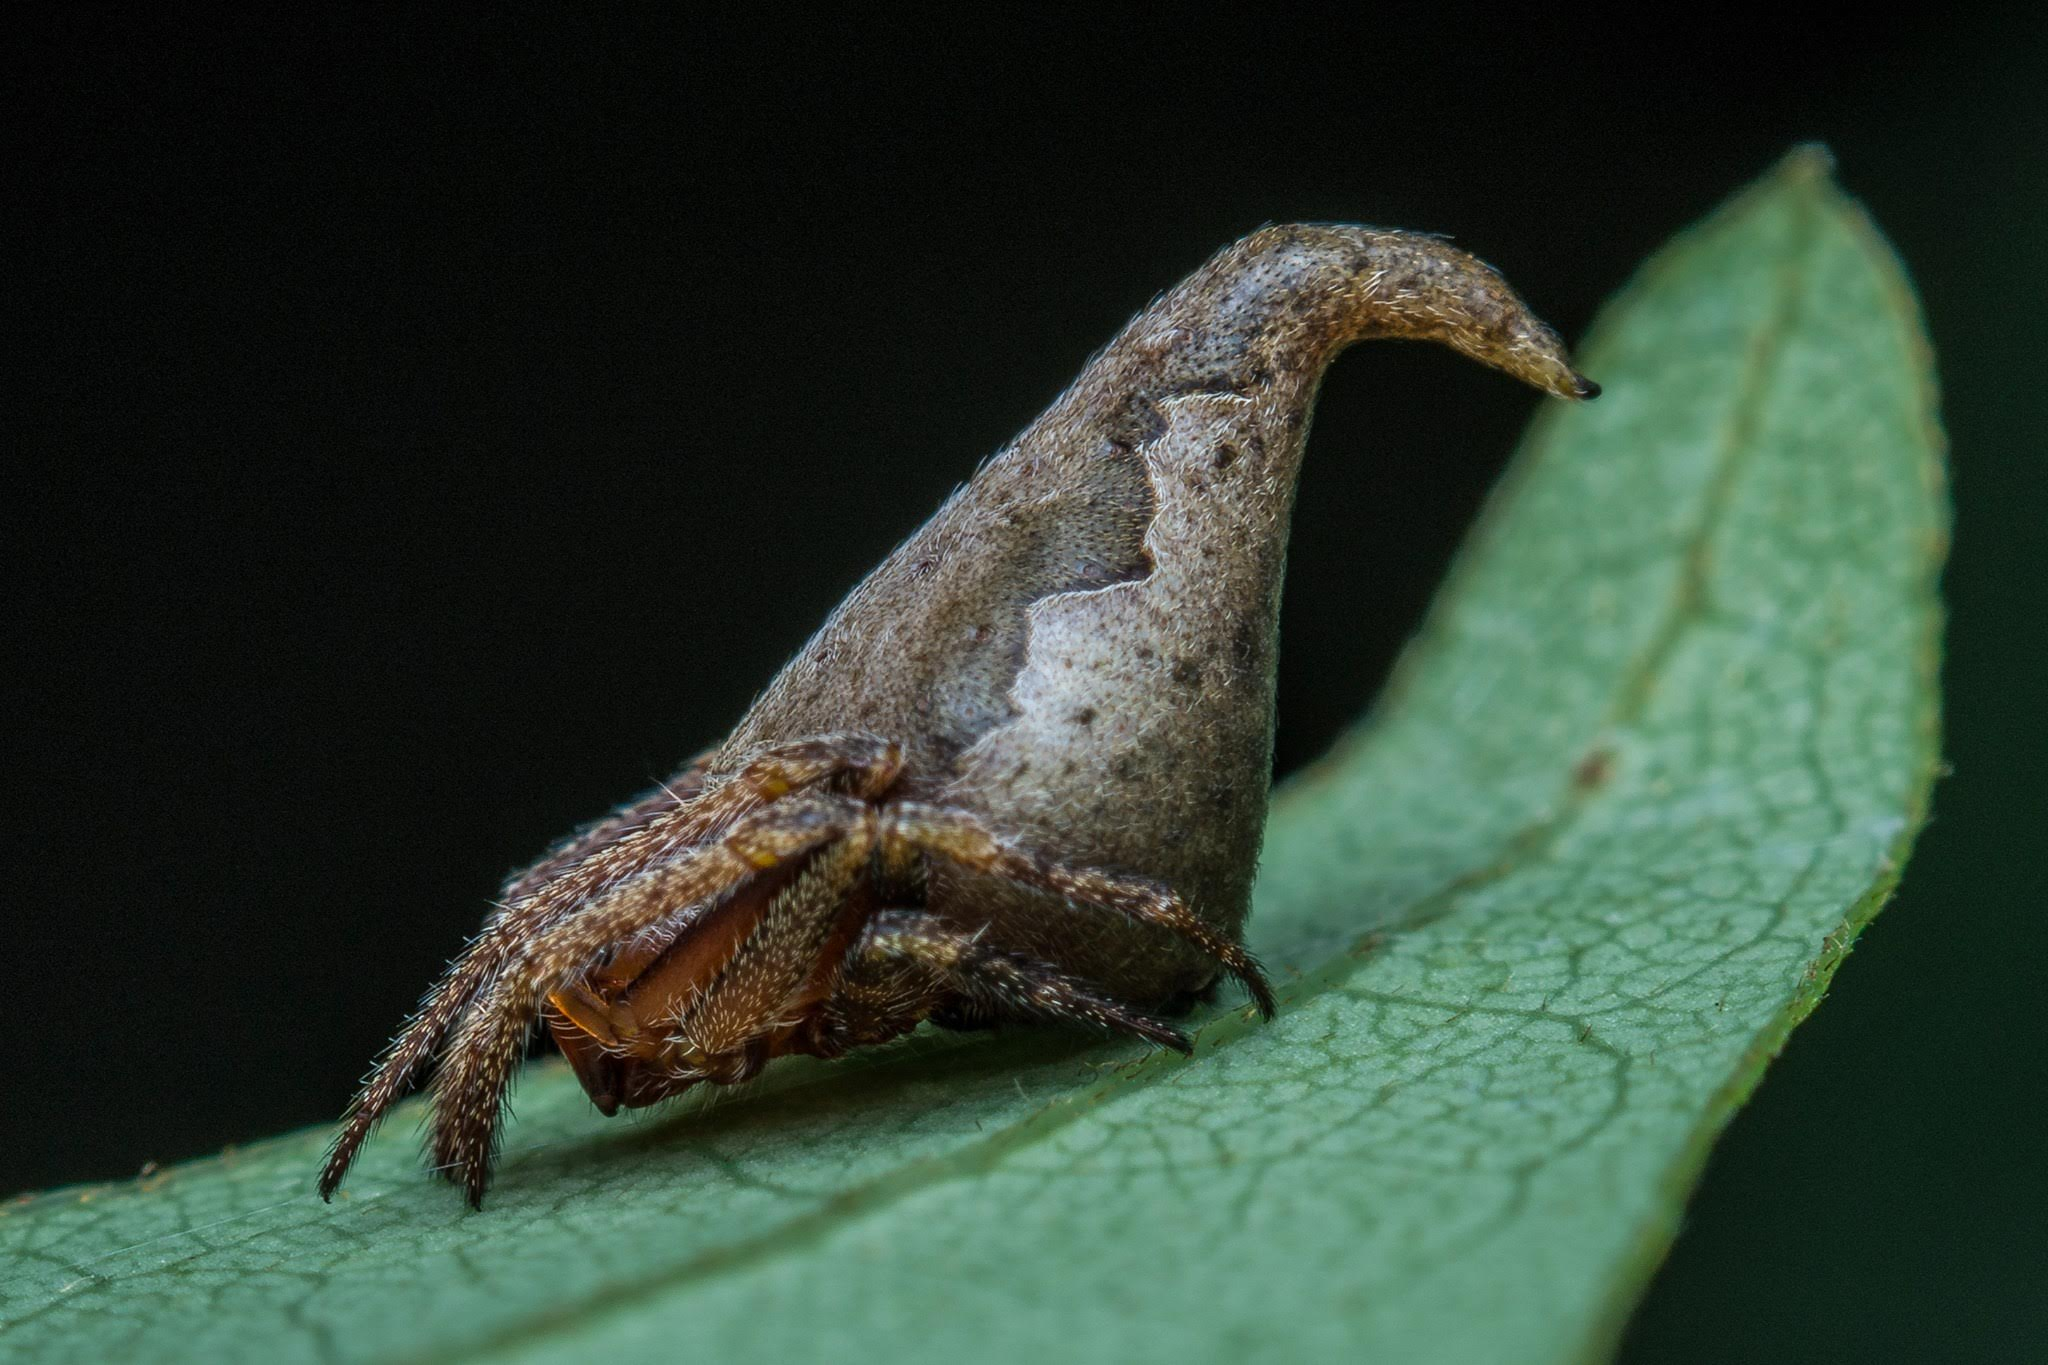 The Eriovixia gryffindori (the Sorting Hat spider). Credit: Sumukha JN